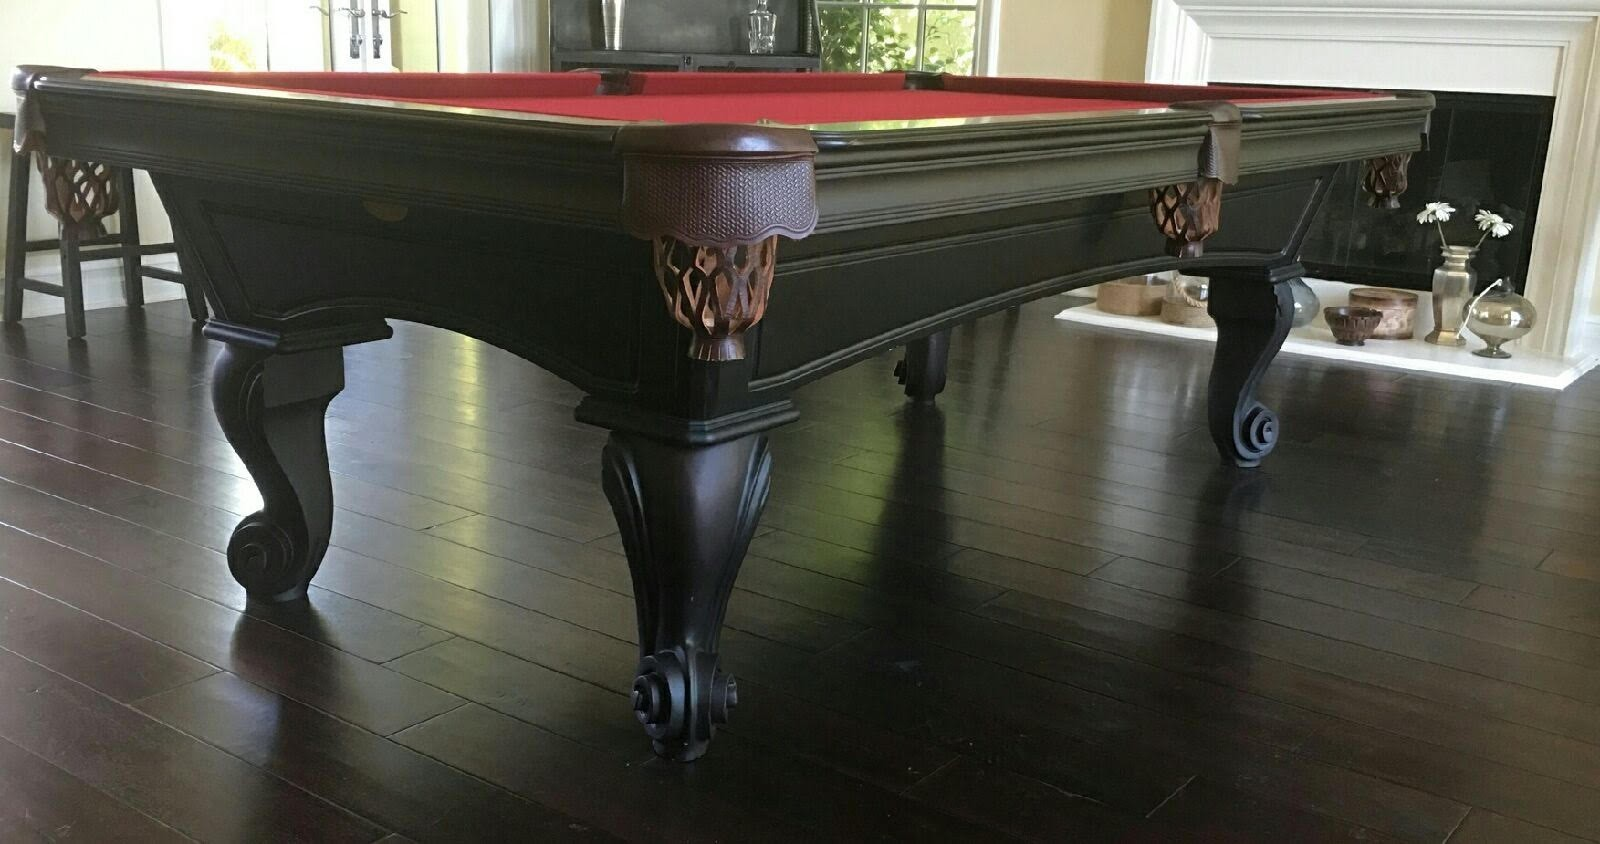 POOL TABLES Preowned Used Billiard Tables GREAT PRICES - Pool table movers riverside